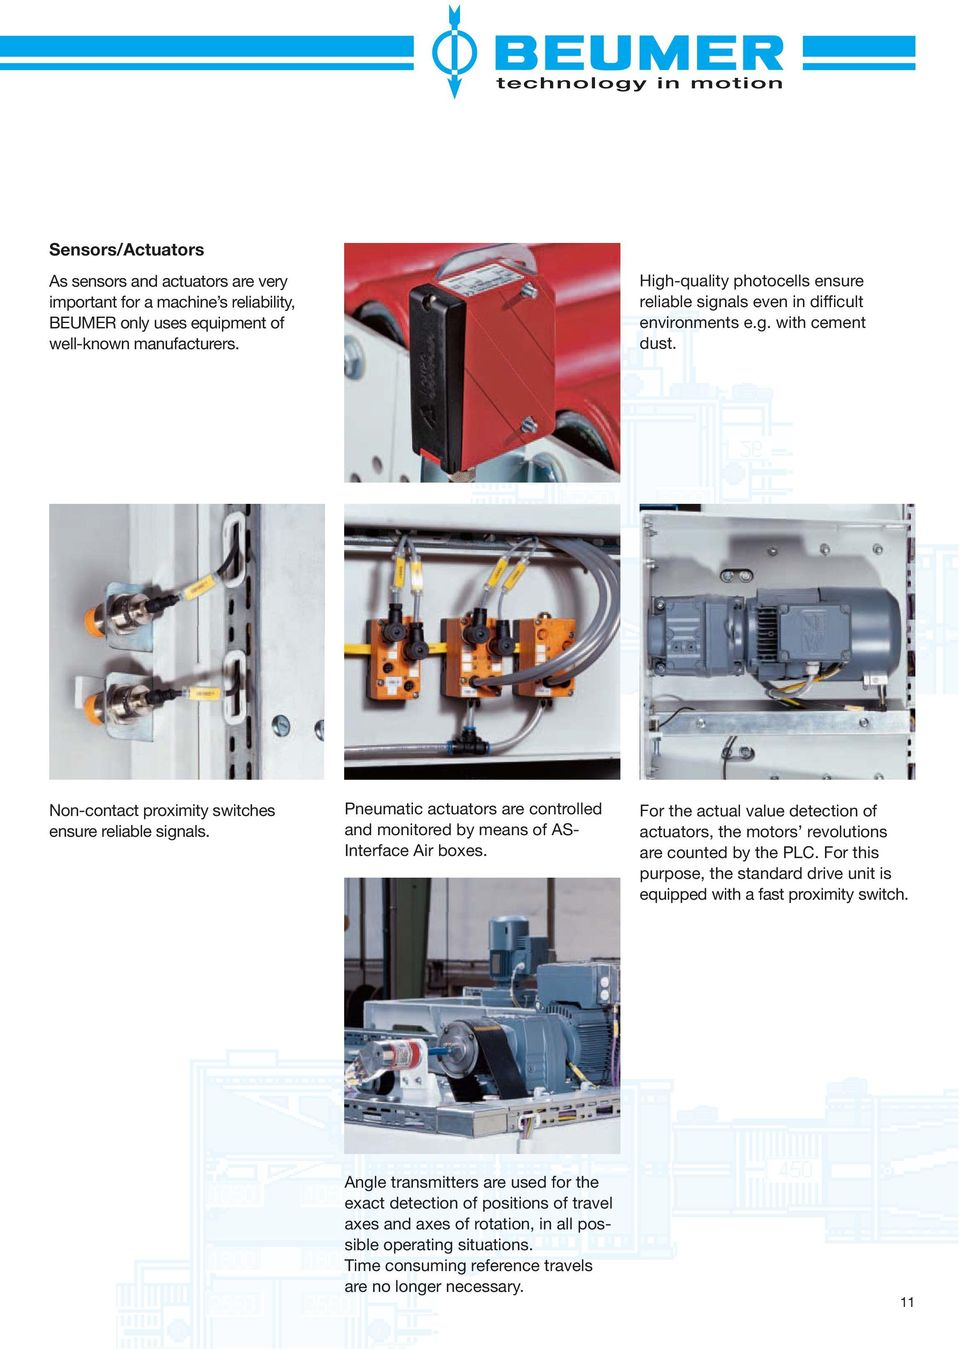 Pneumatic actuators are controlled and monitored by means of AS- Interface Air boxes. For the actual value detection of actuators, the motors revolutions are counted by the PLC.